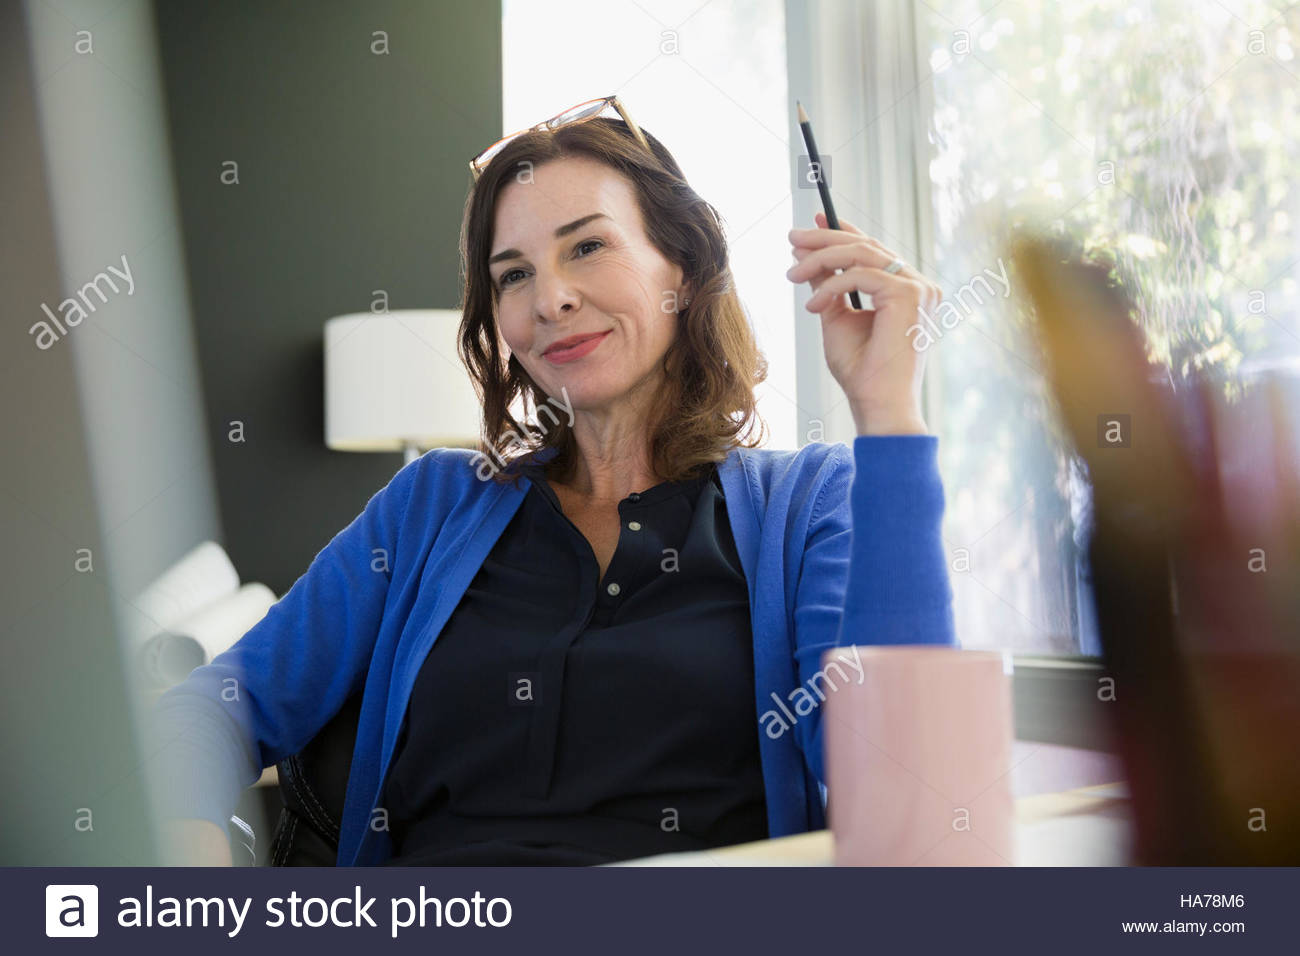 Confident businesswoman in office Photo Stock